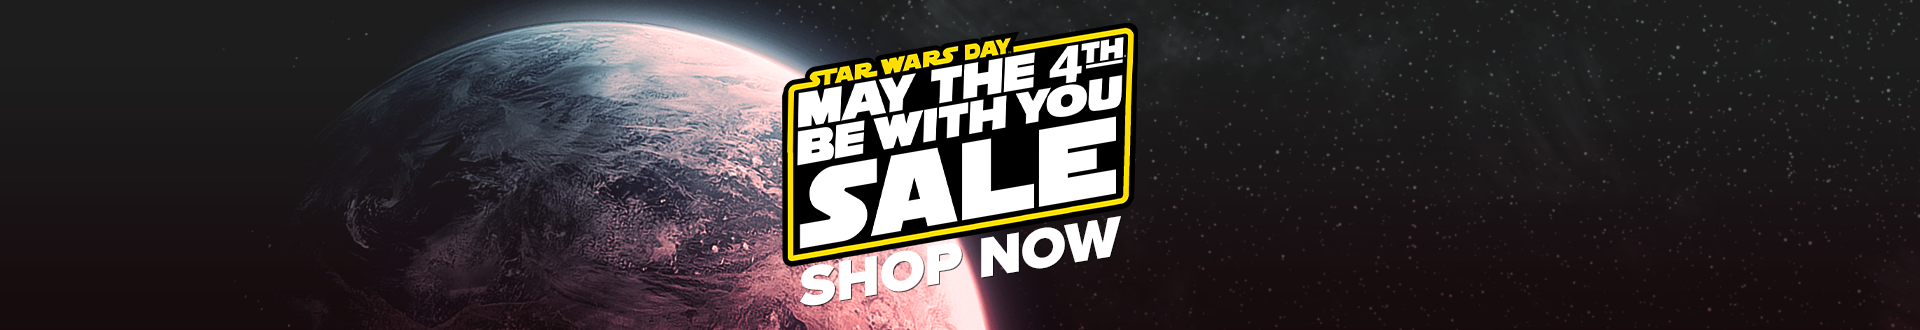 Star Wars Day Store